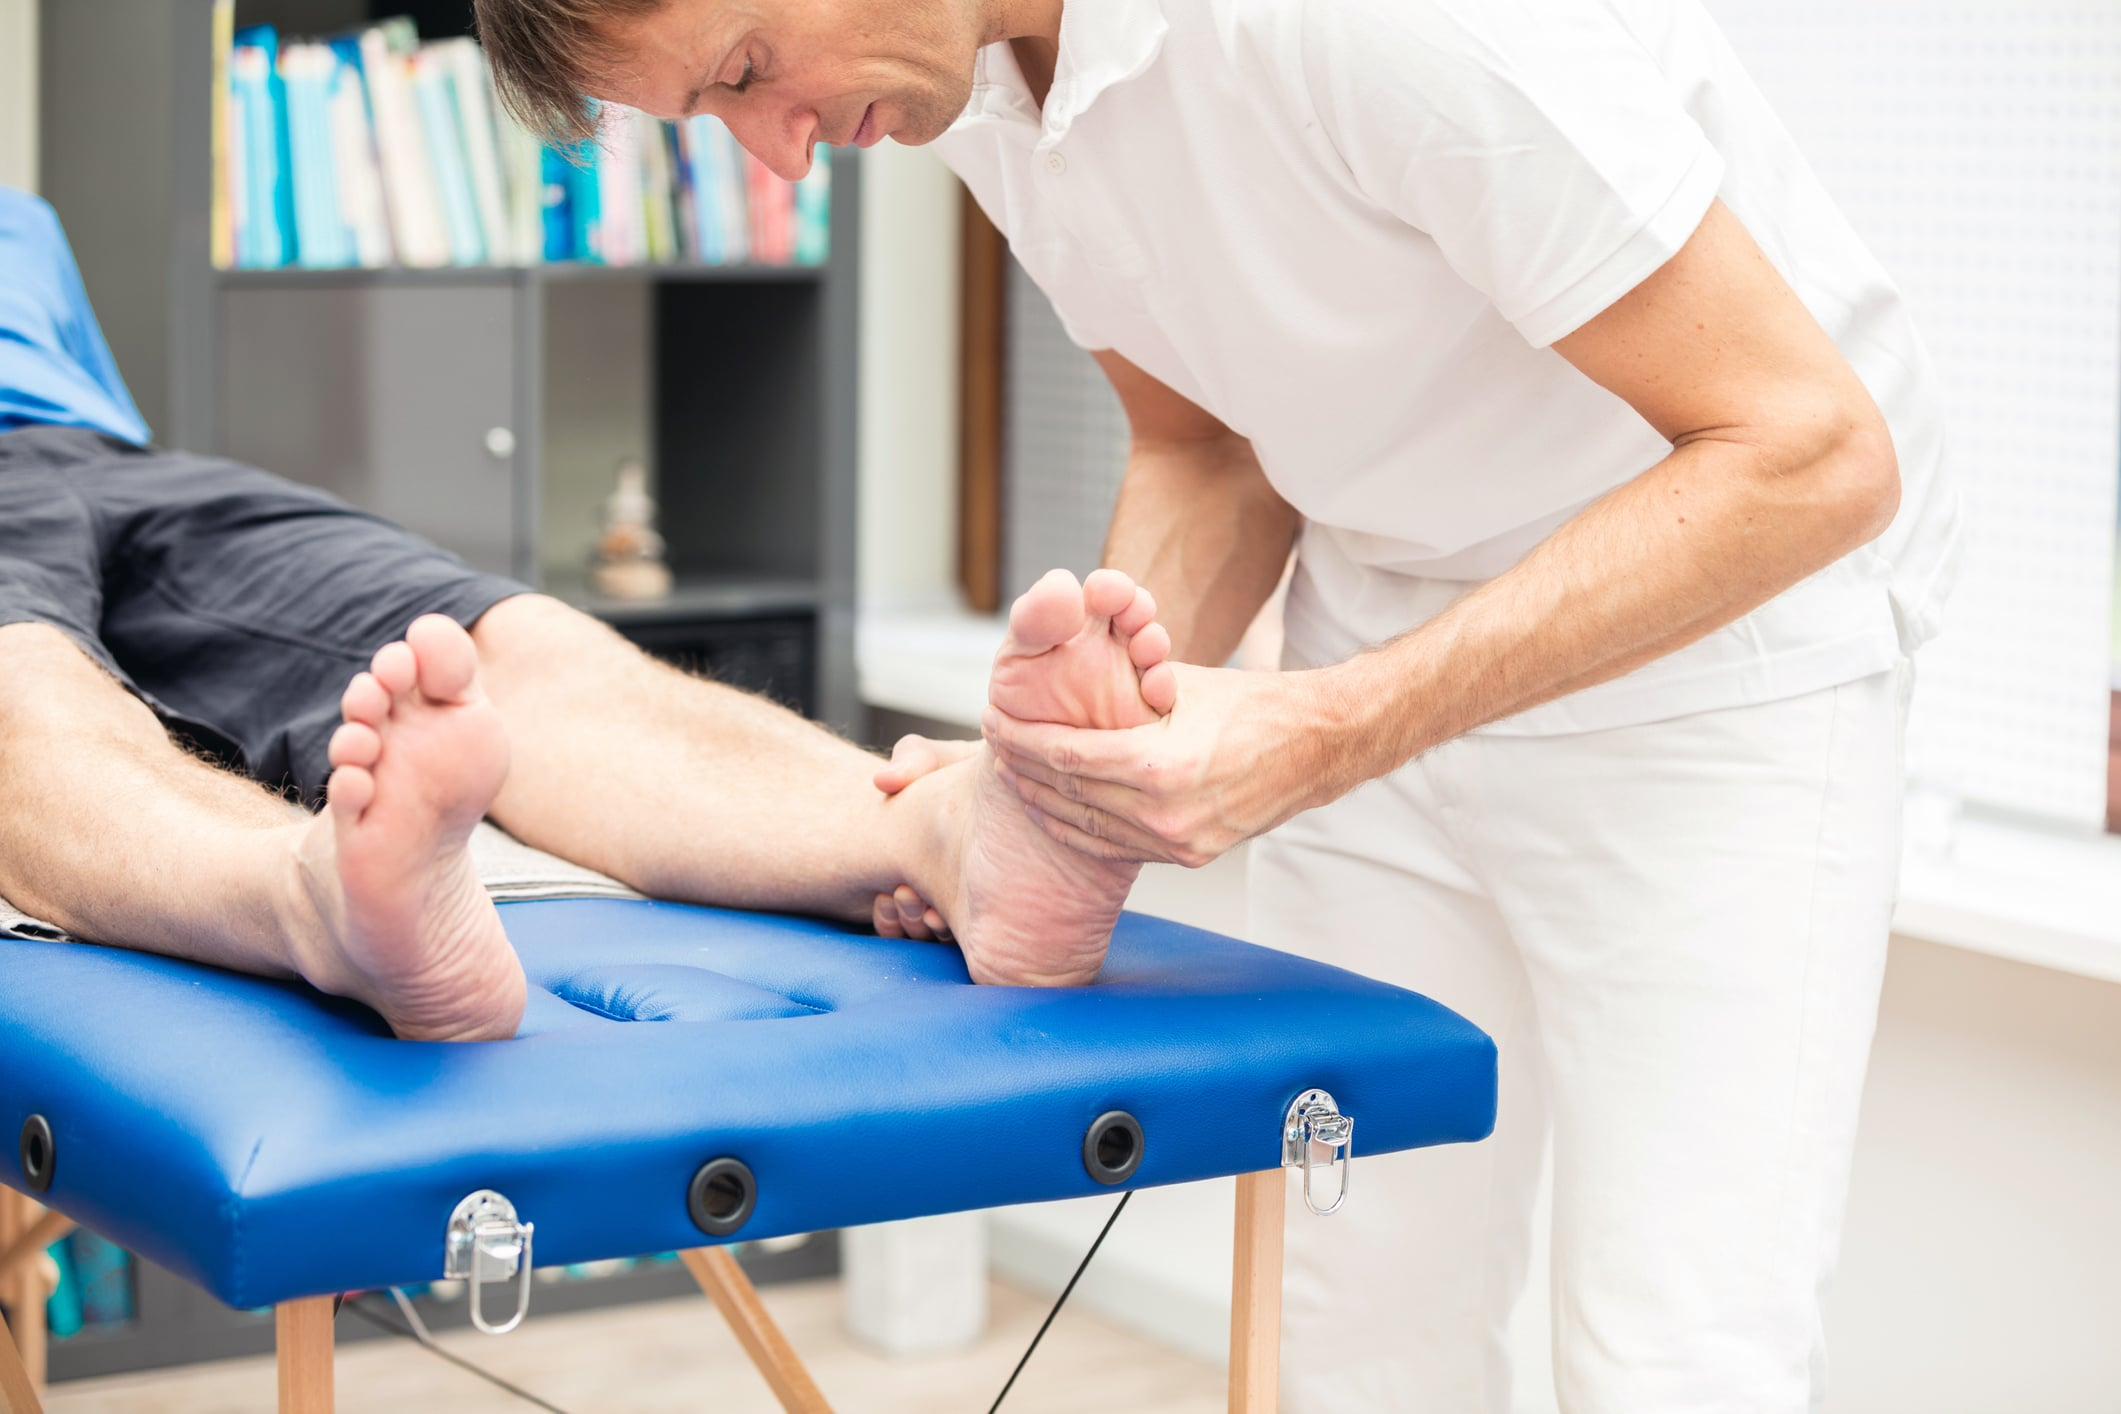 chiropractor testing foot mobility and proper support